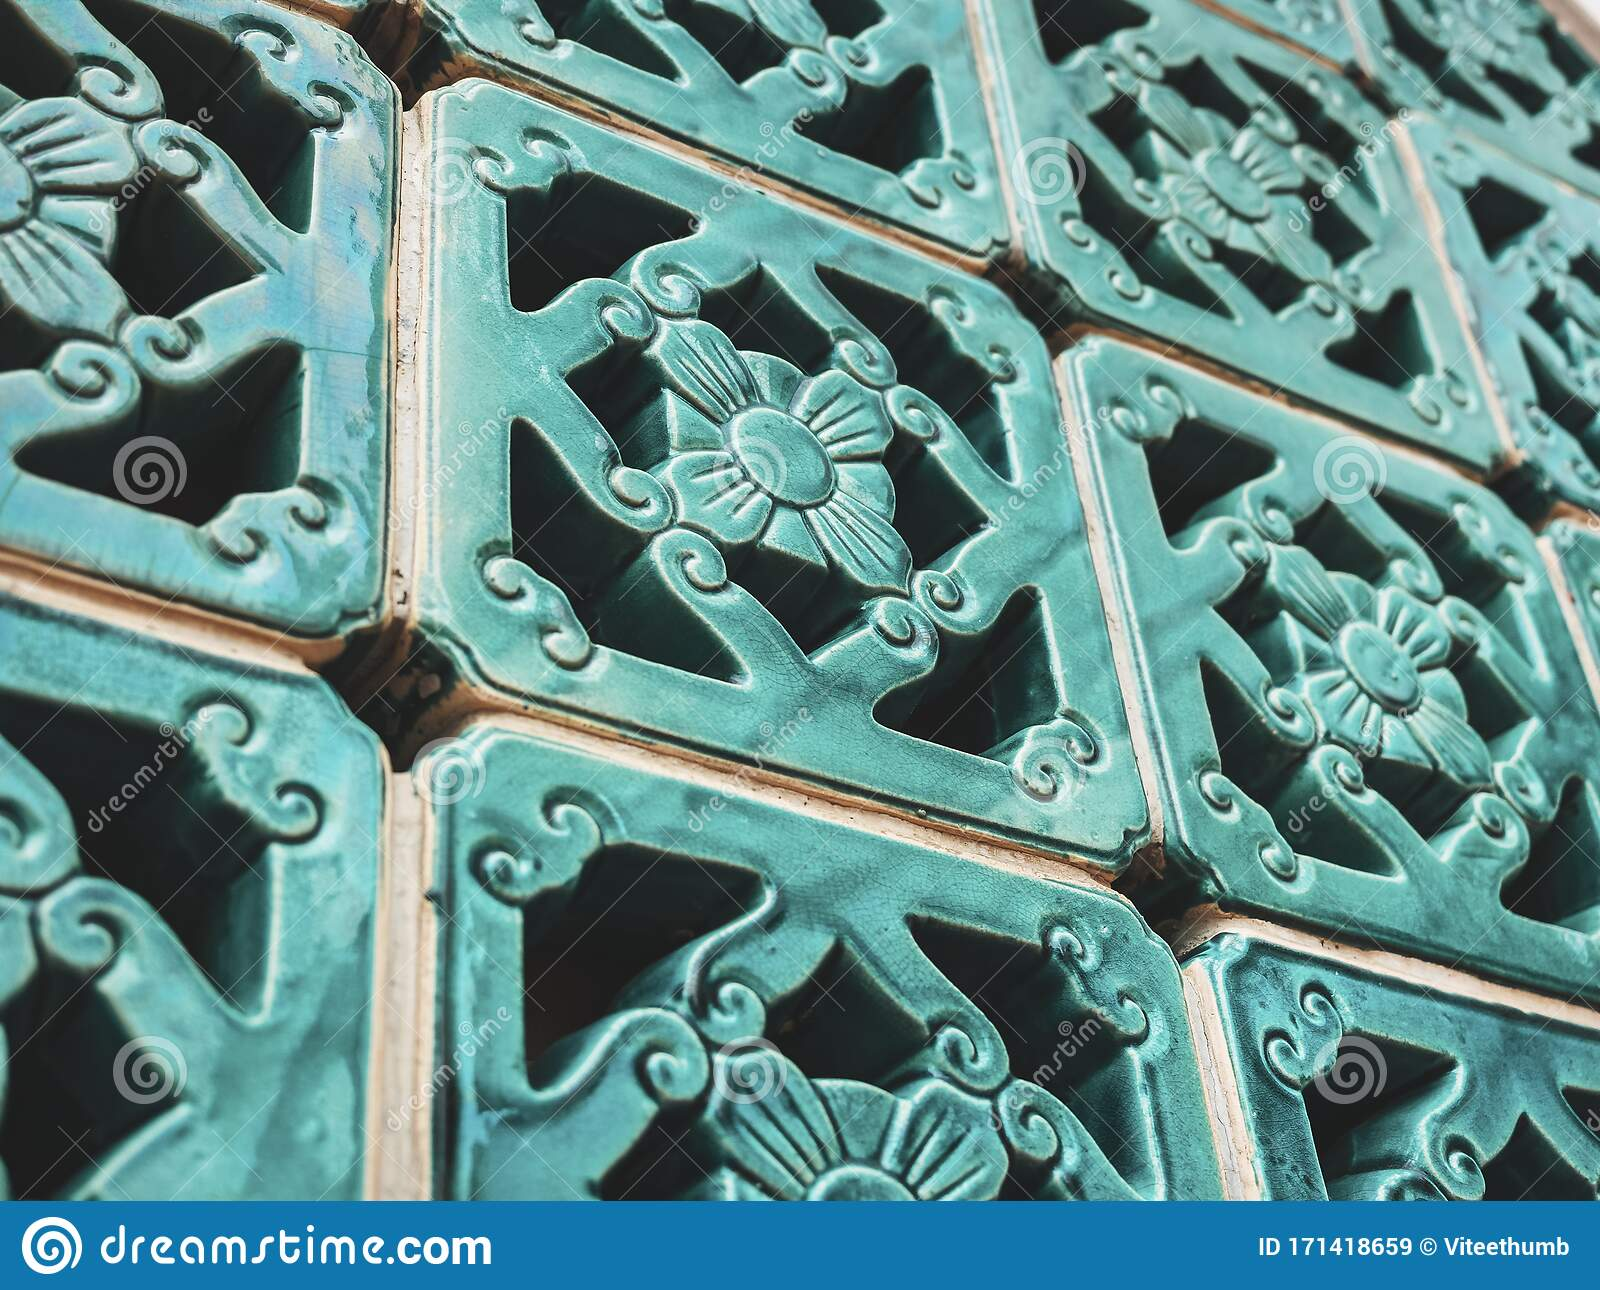 Chinese Ceramic Tiles Floral Pattern Wall Decoration Green Glossy Asian Art Stock Image Image Of Shape Background 171418659